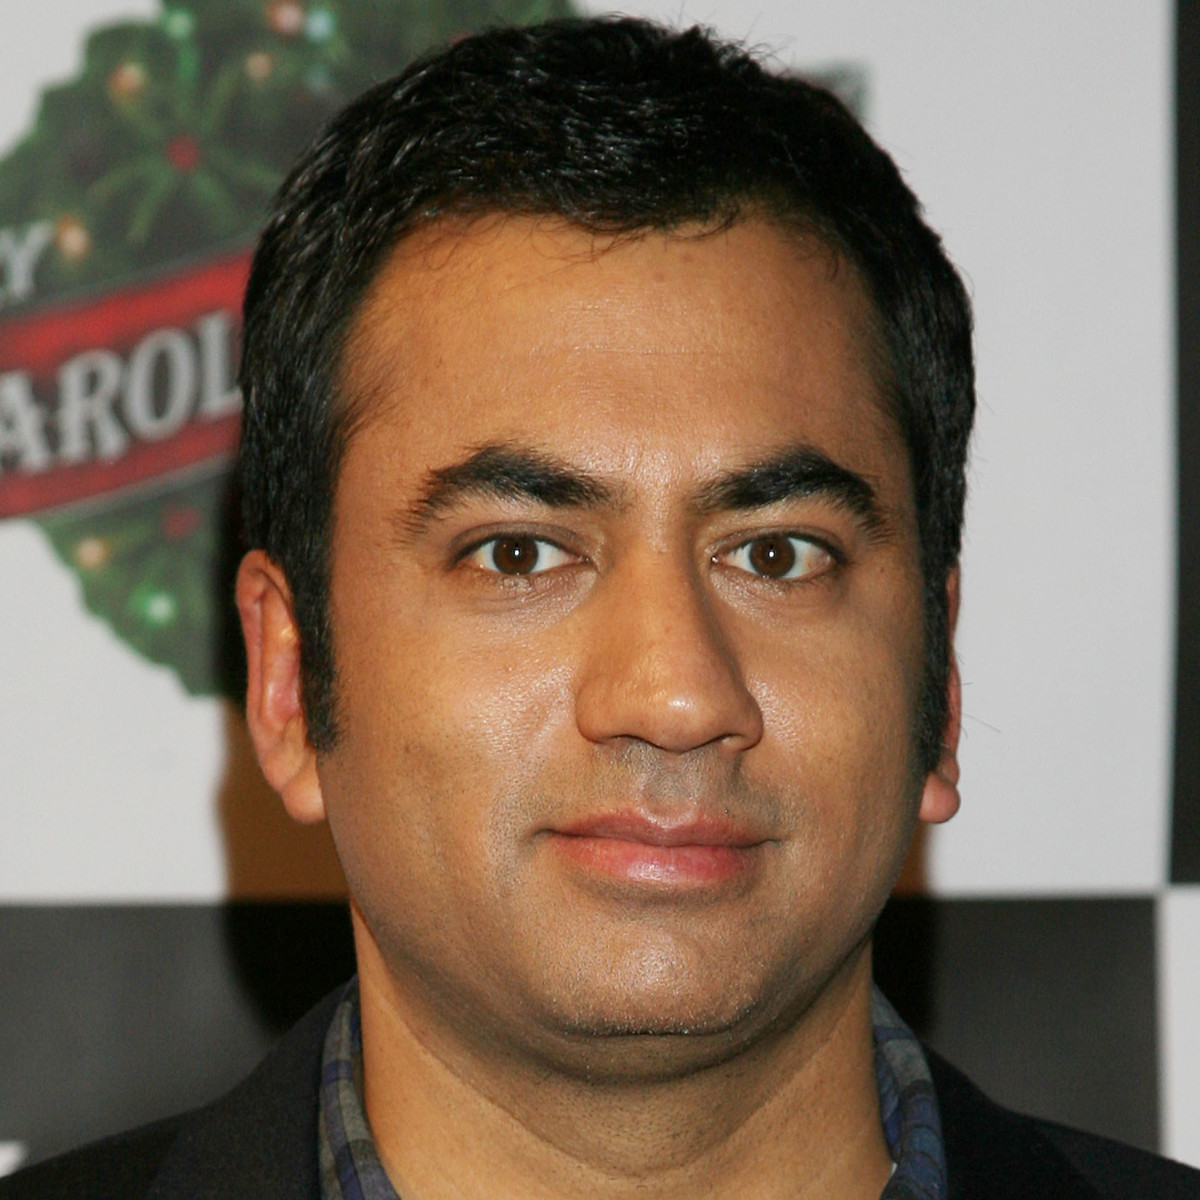 Kal Penn  Film Actor, Government Official, Television